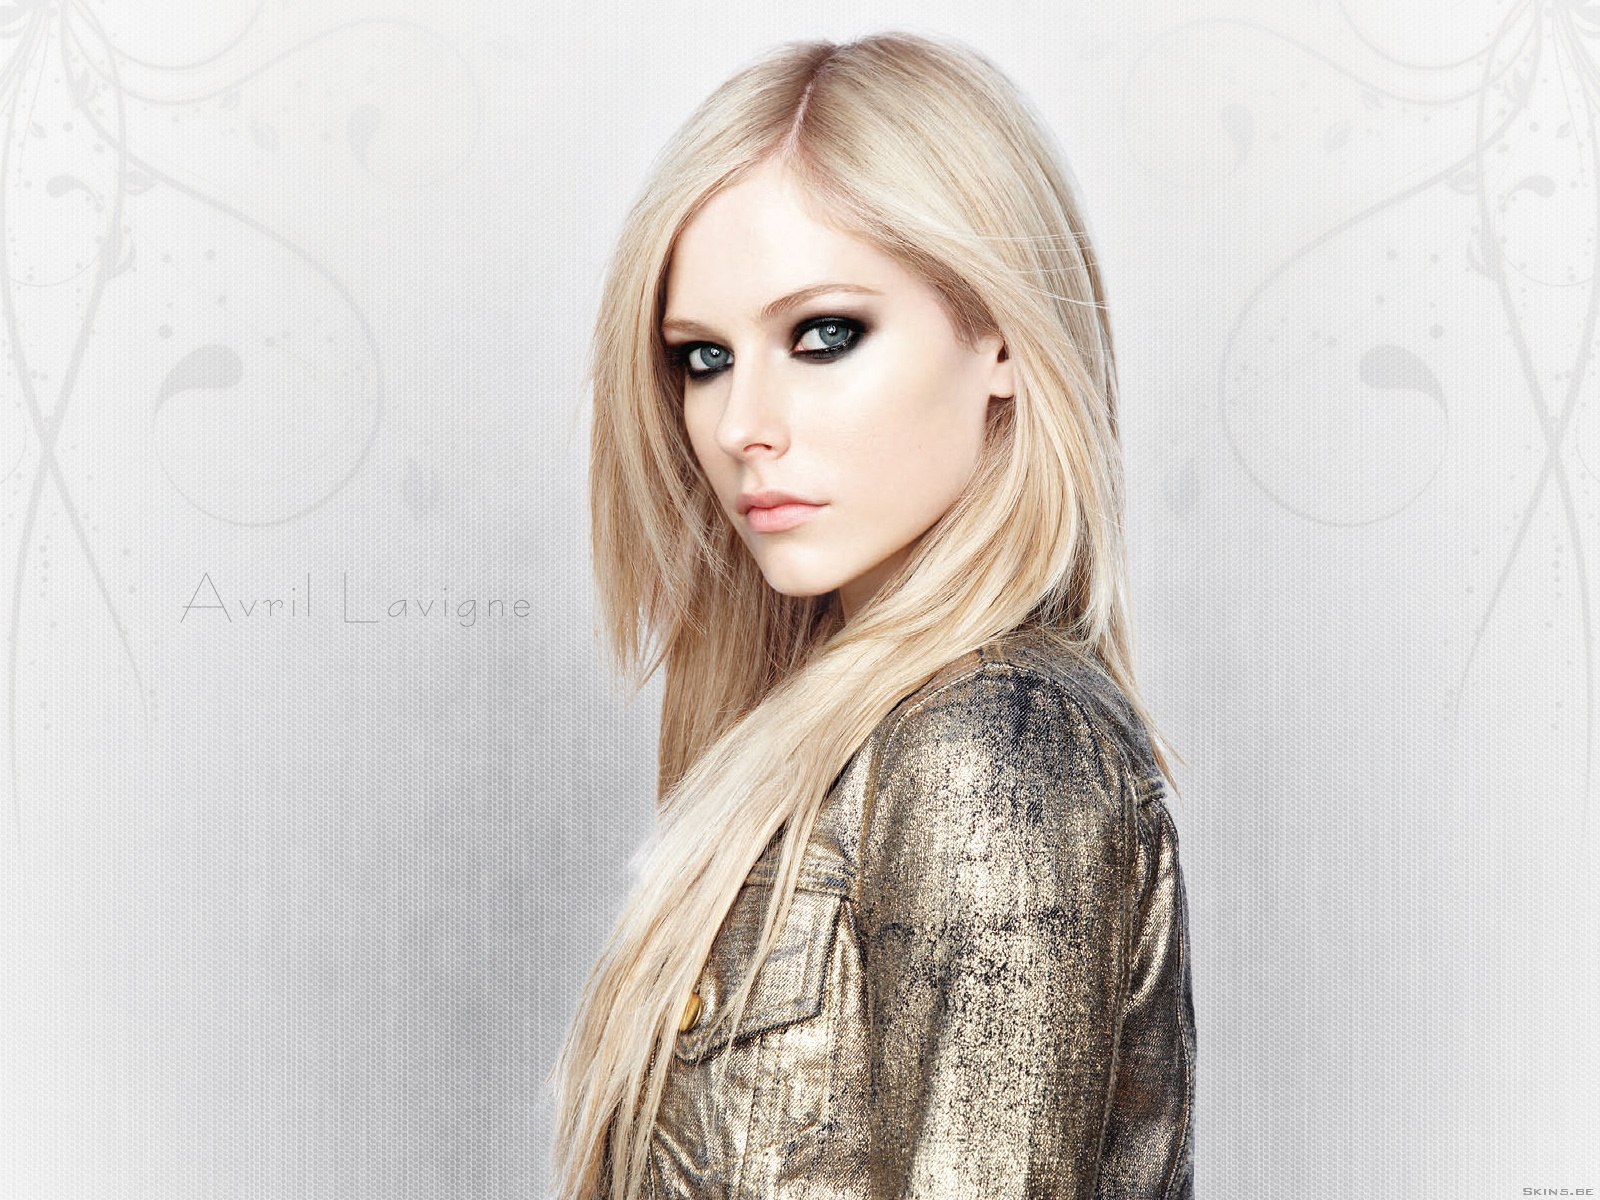 Avril Lavigne wallpaper (#41645)